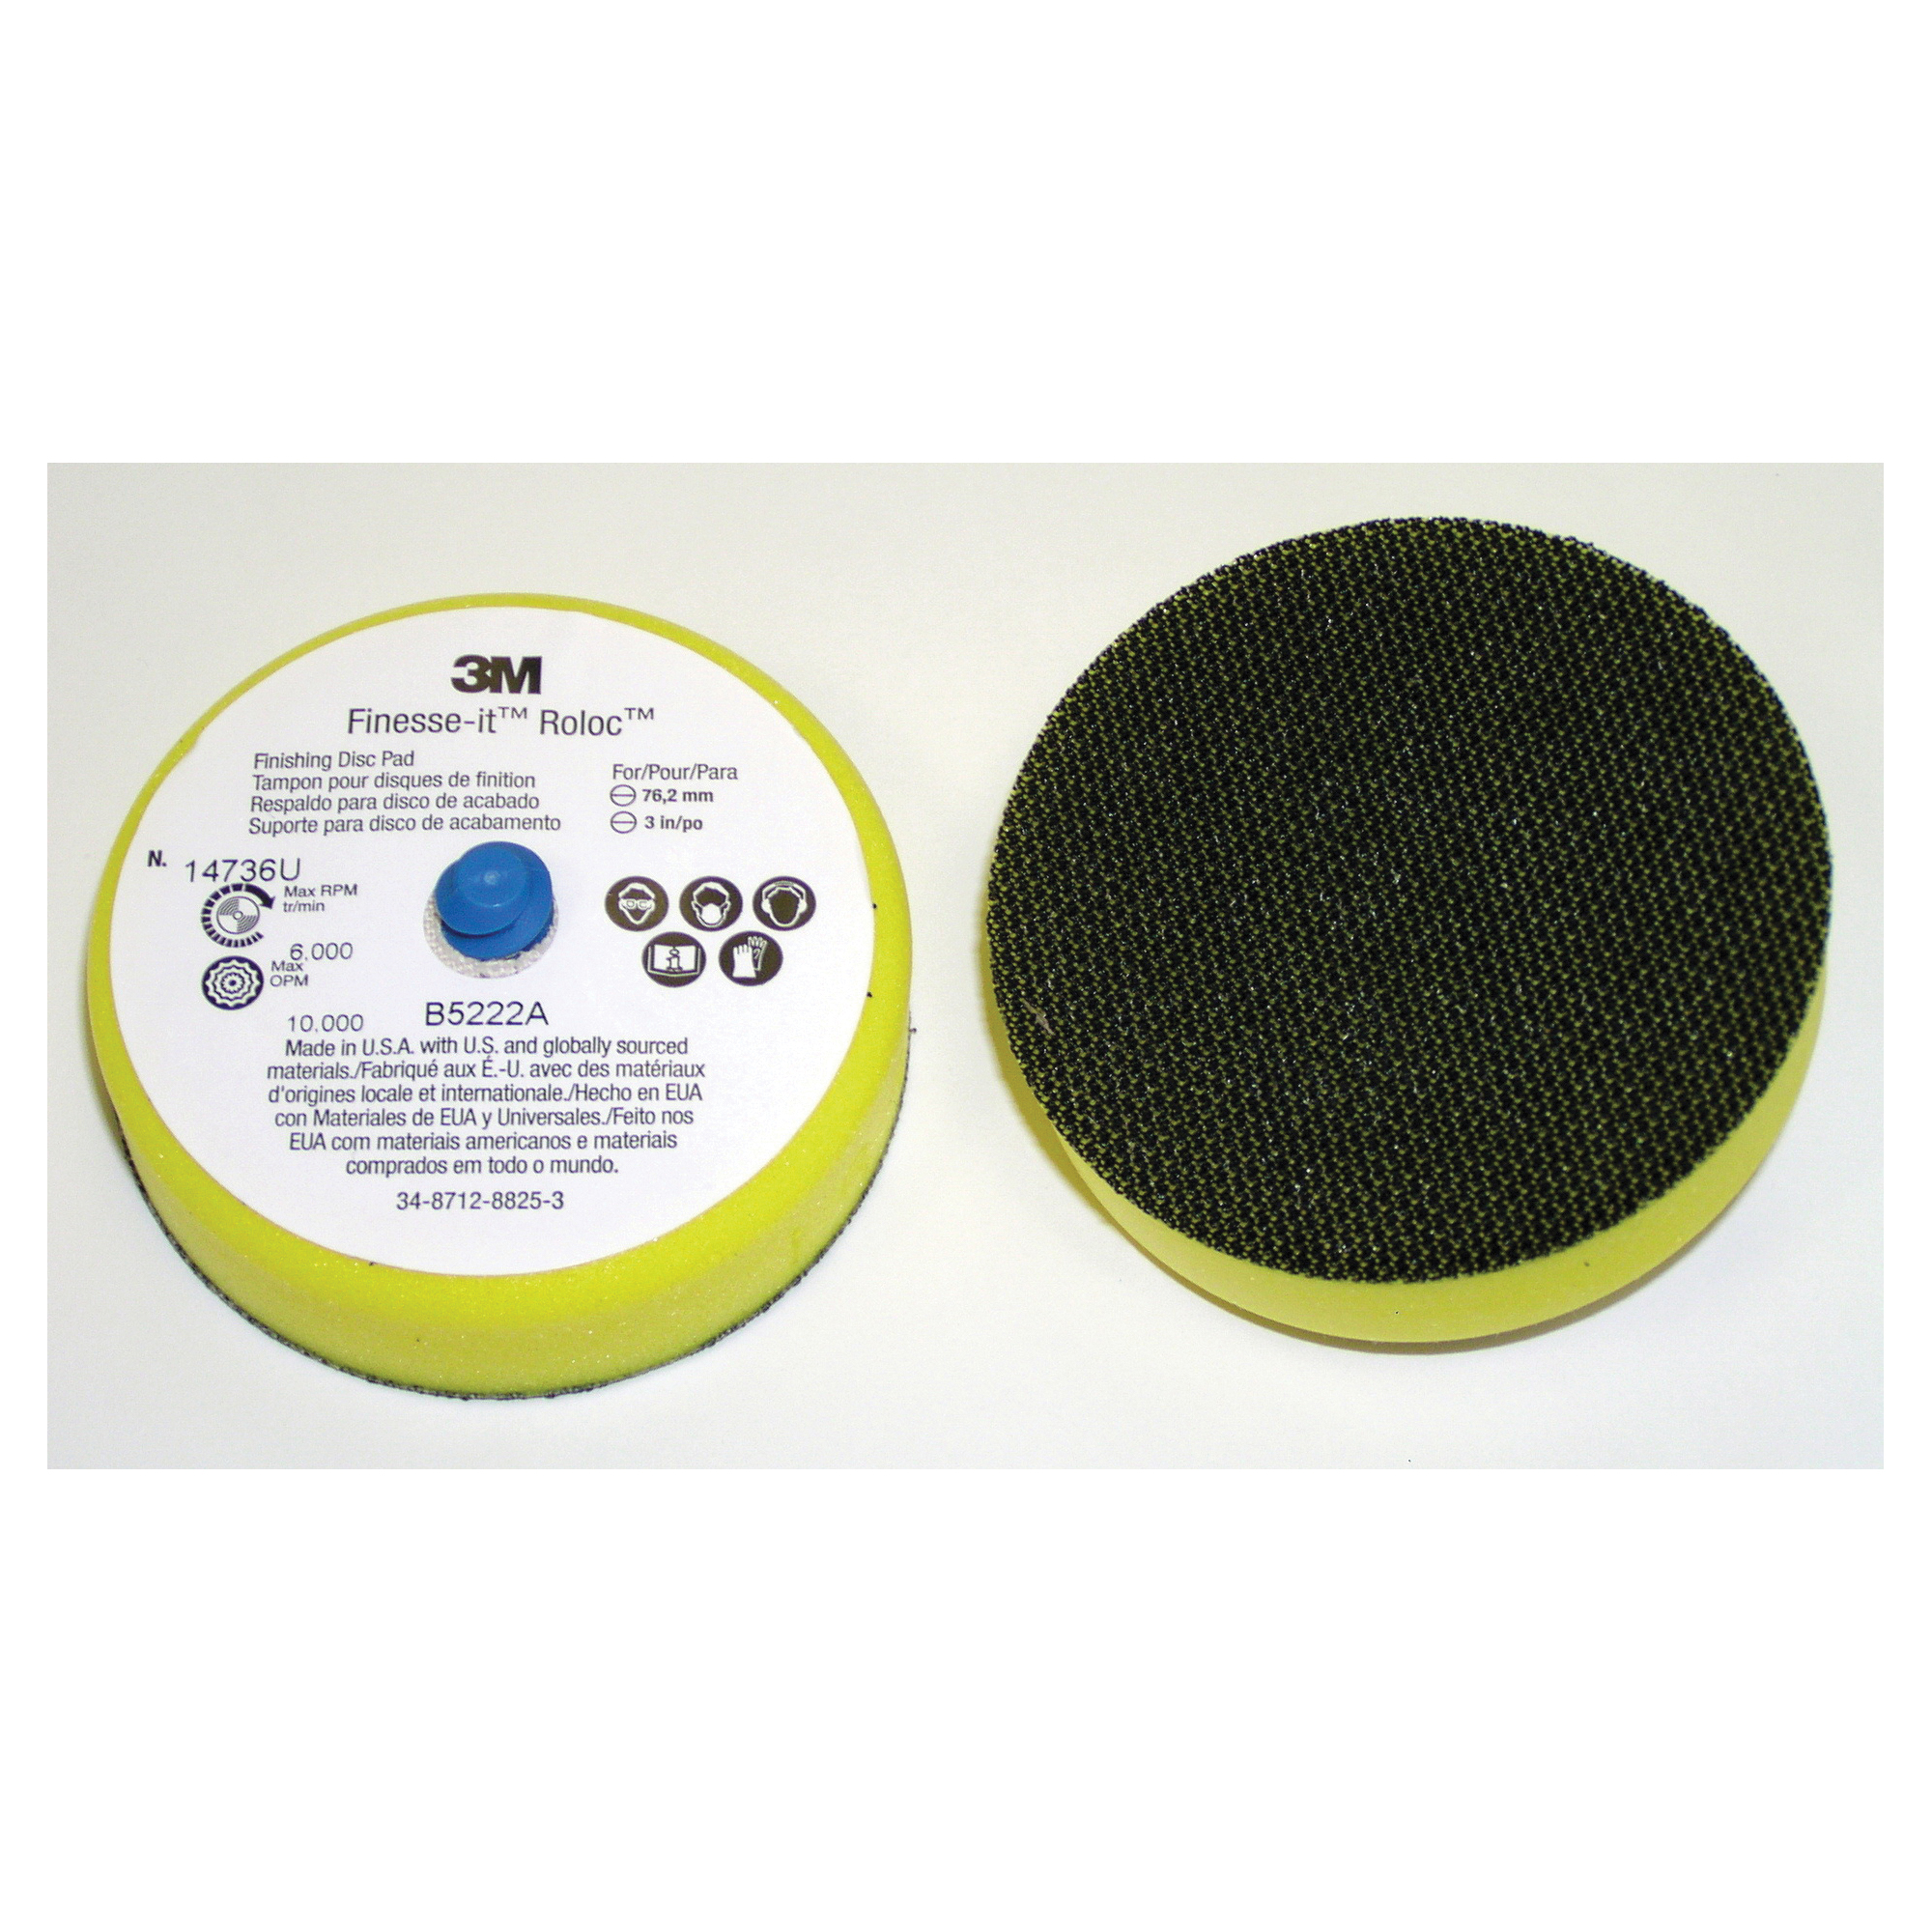 Finesse-it™ 051144-13441 Firm Density Regular Hand Sanding Pad, 1-1/4 in Dia Pad, PSA Attachment